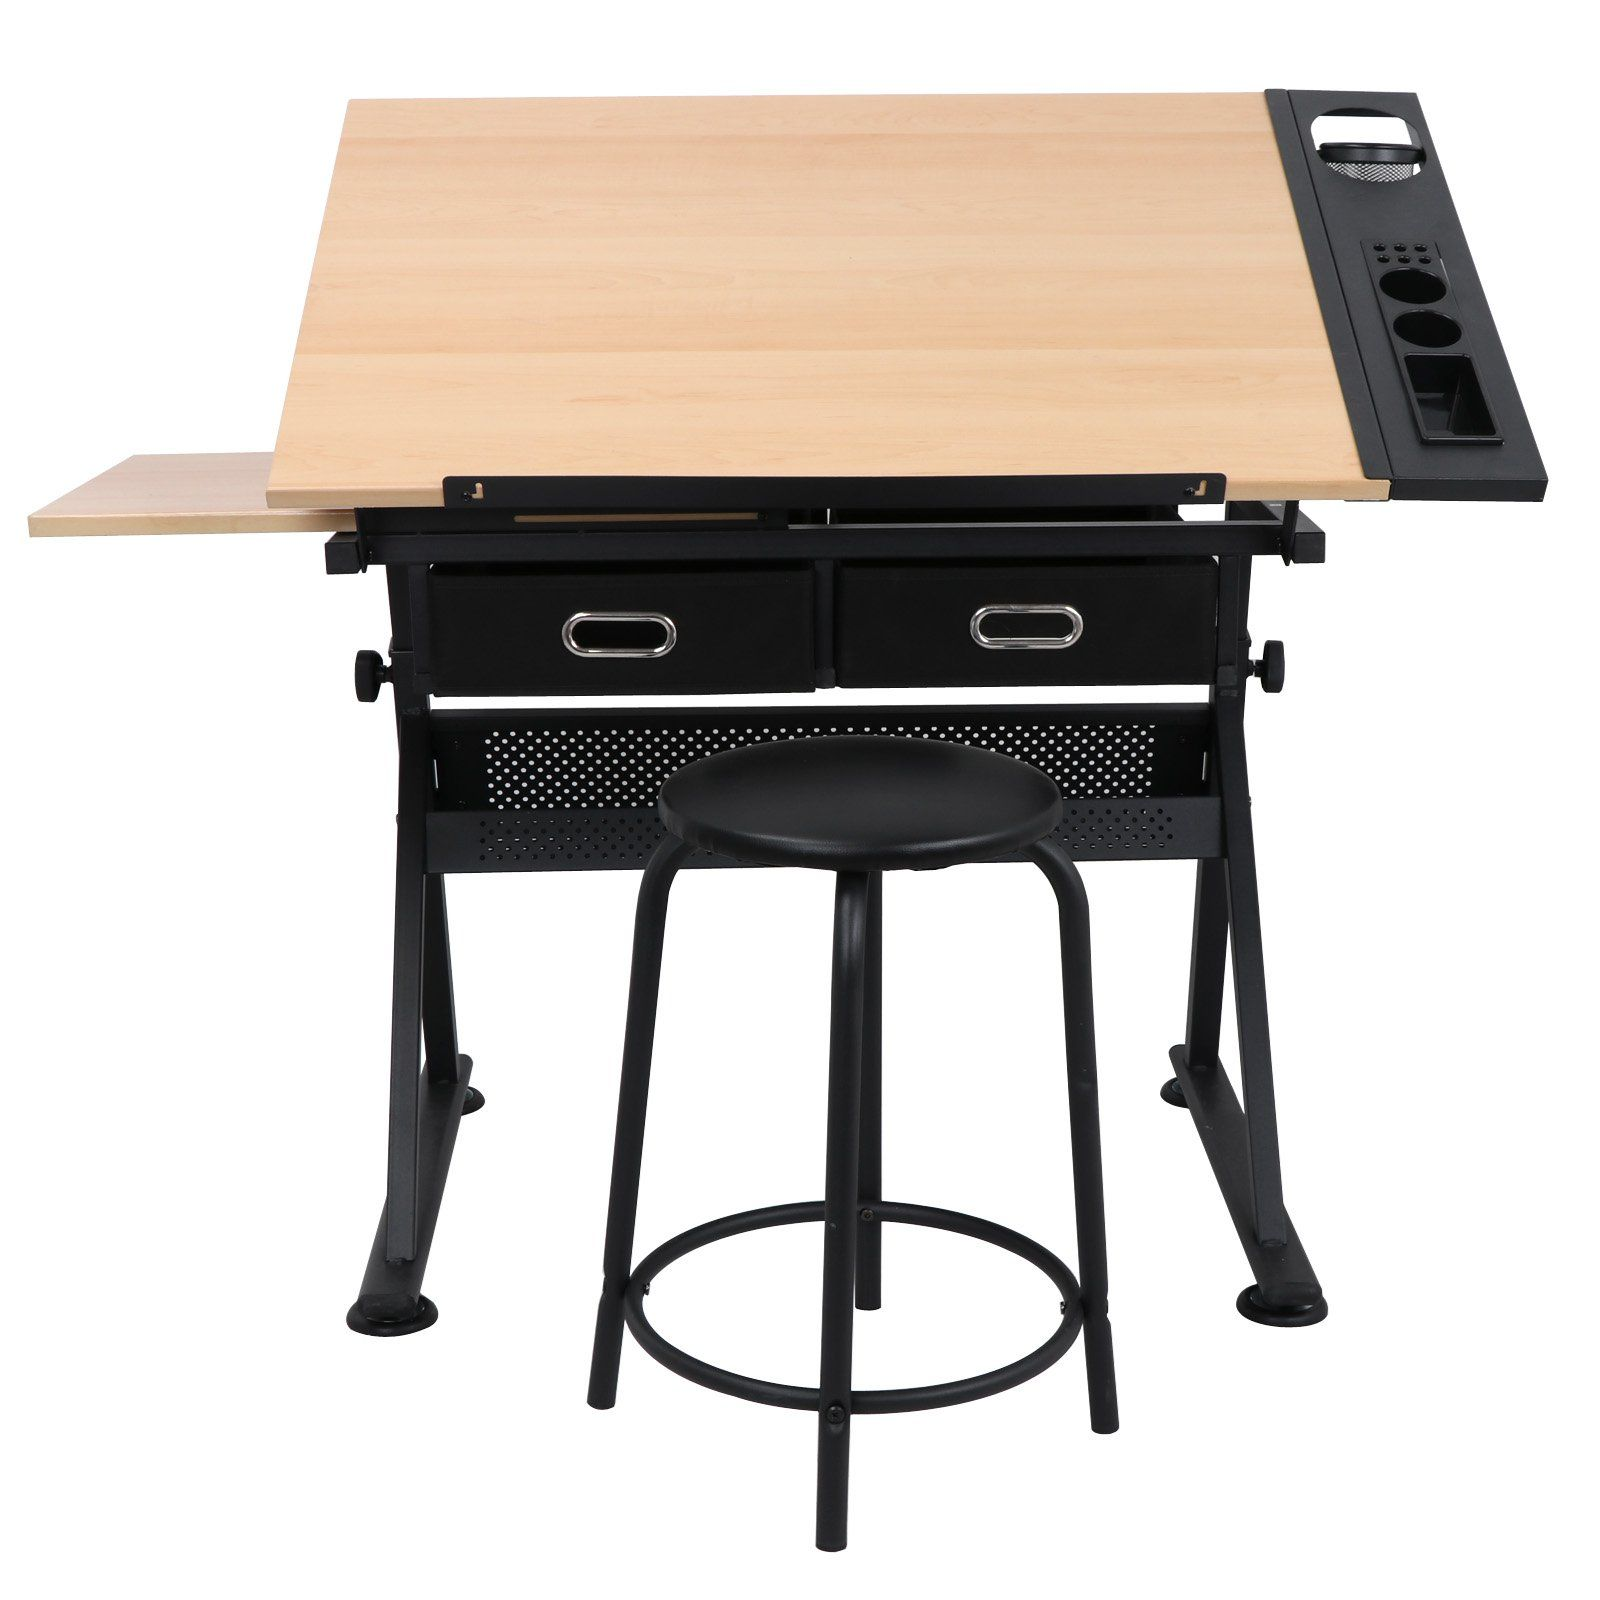 Zeny Drafting Desk Drawing Table Desk Tiltable Tabletop Adjustable Height W Stool And Drawer For Reading Writing Art Craf Drawing Table Desk Drawing Table Desk